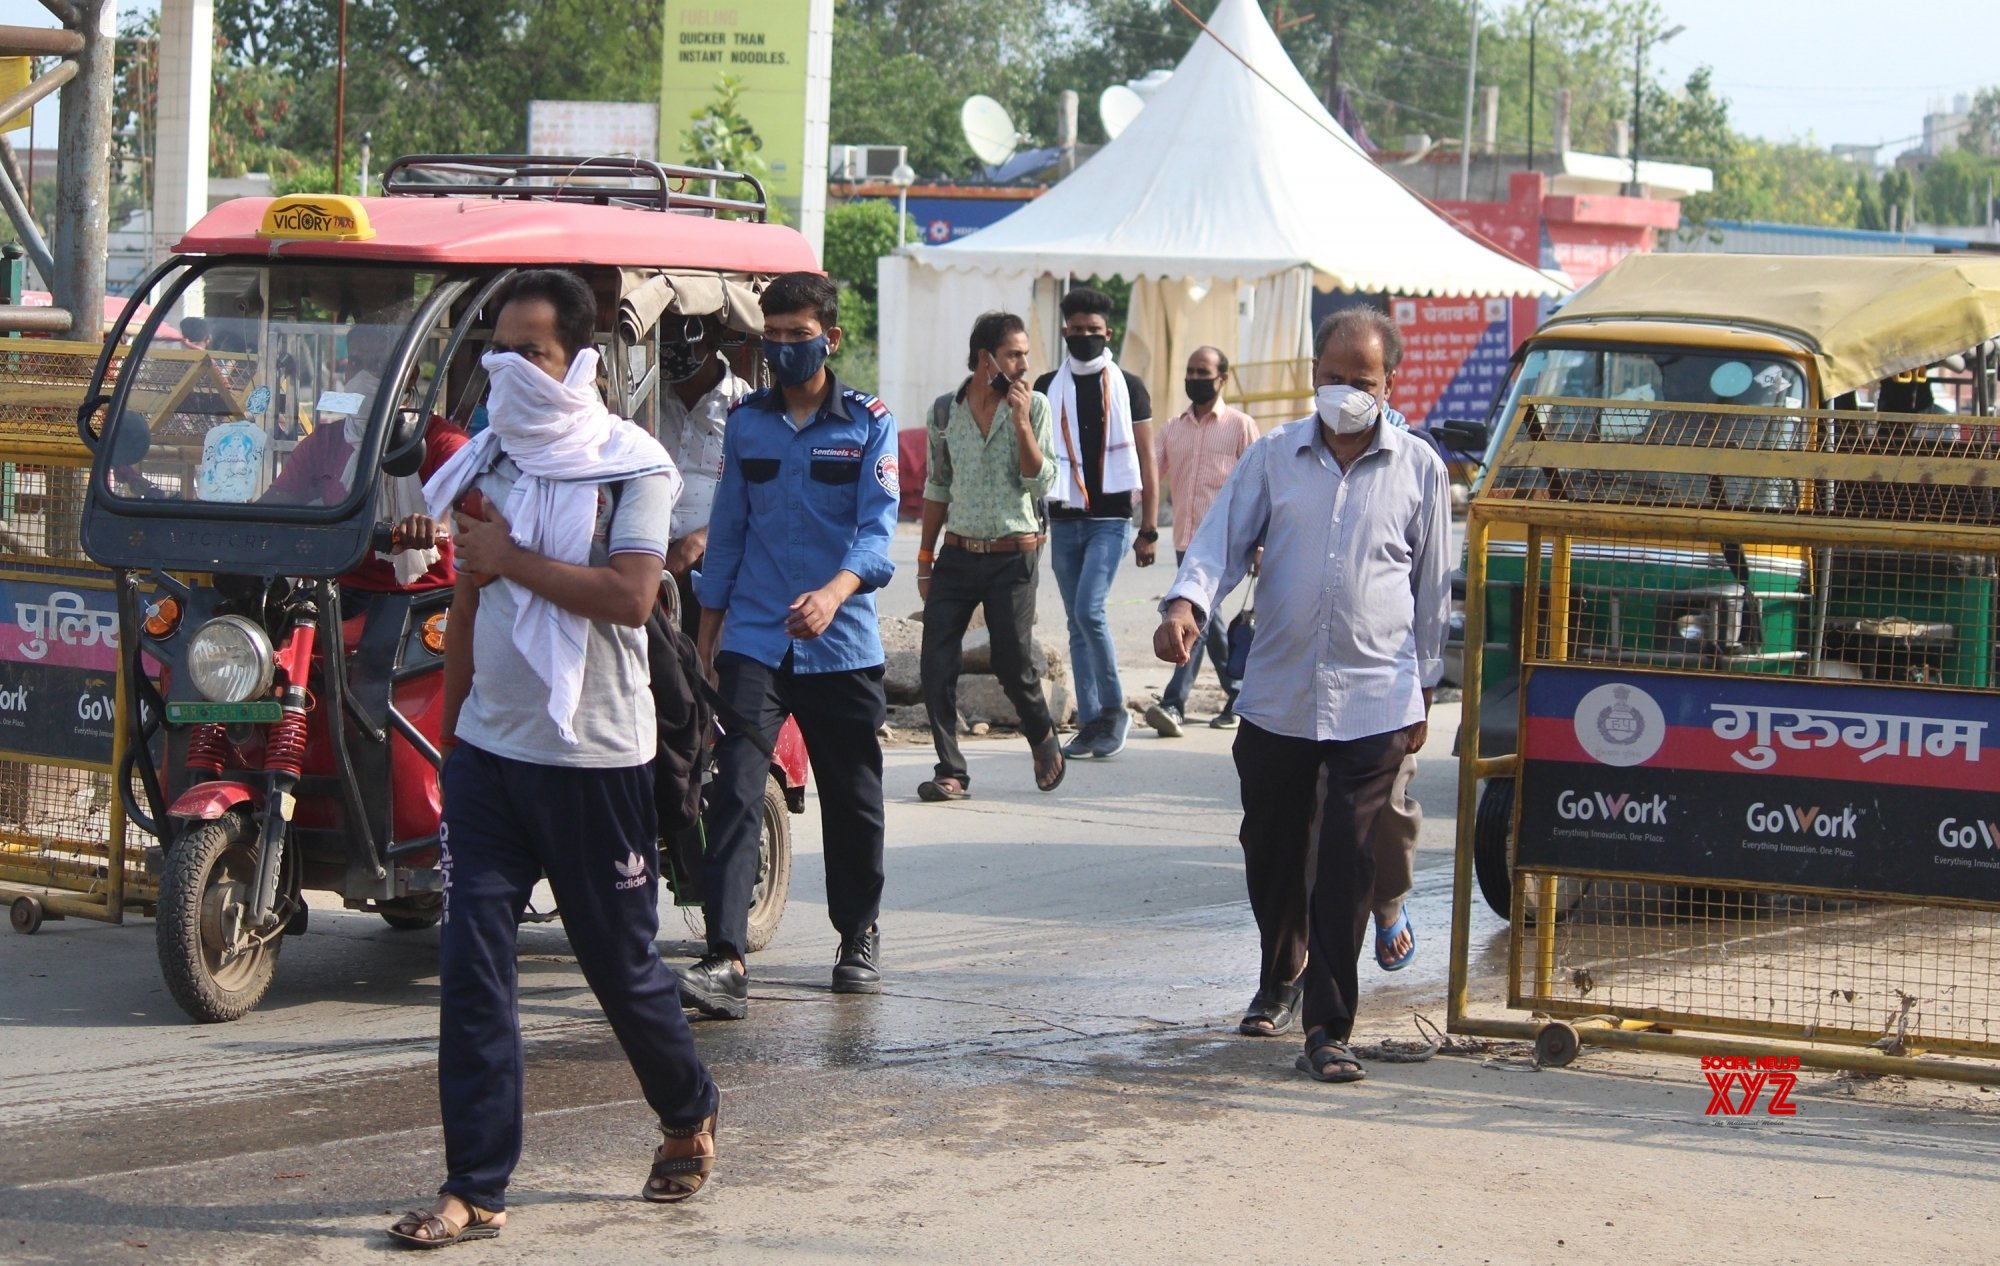 741 new Covid cases, 191 recoveries reported in Gurugram